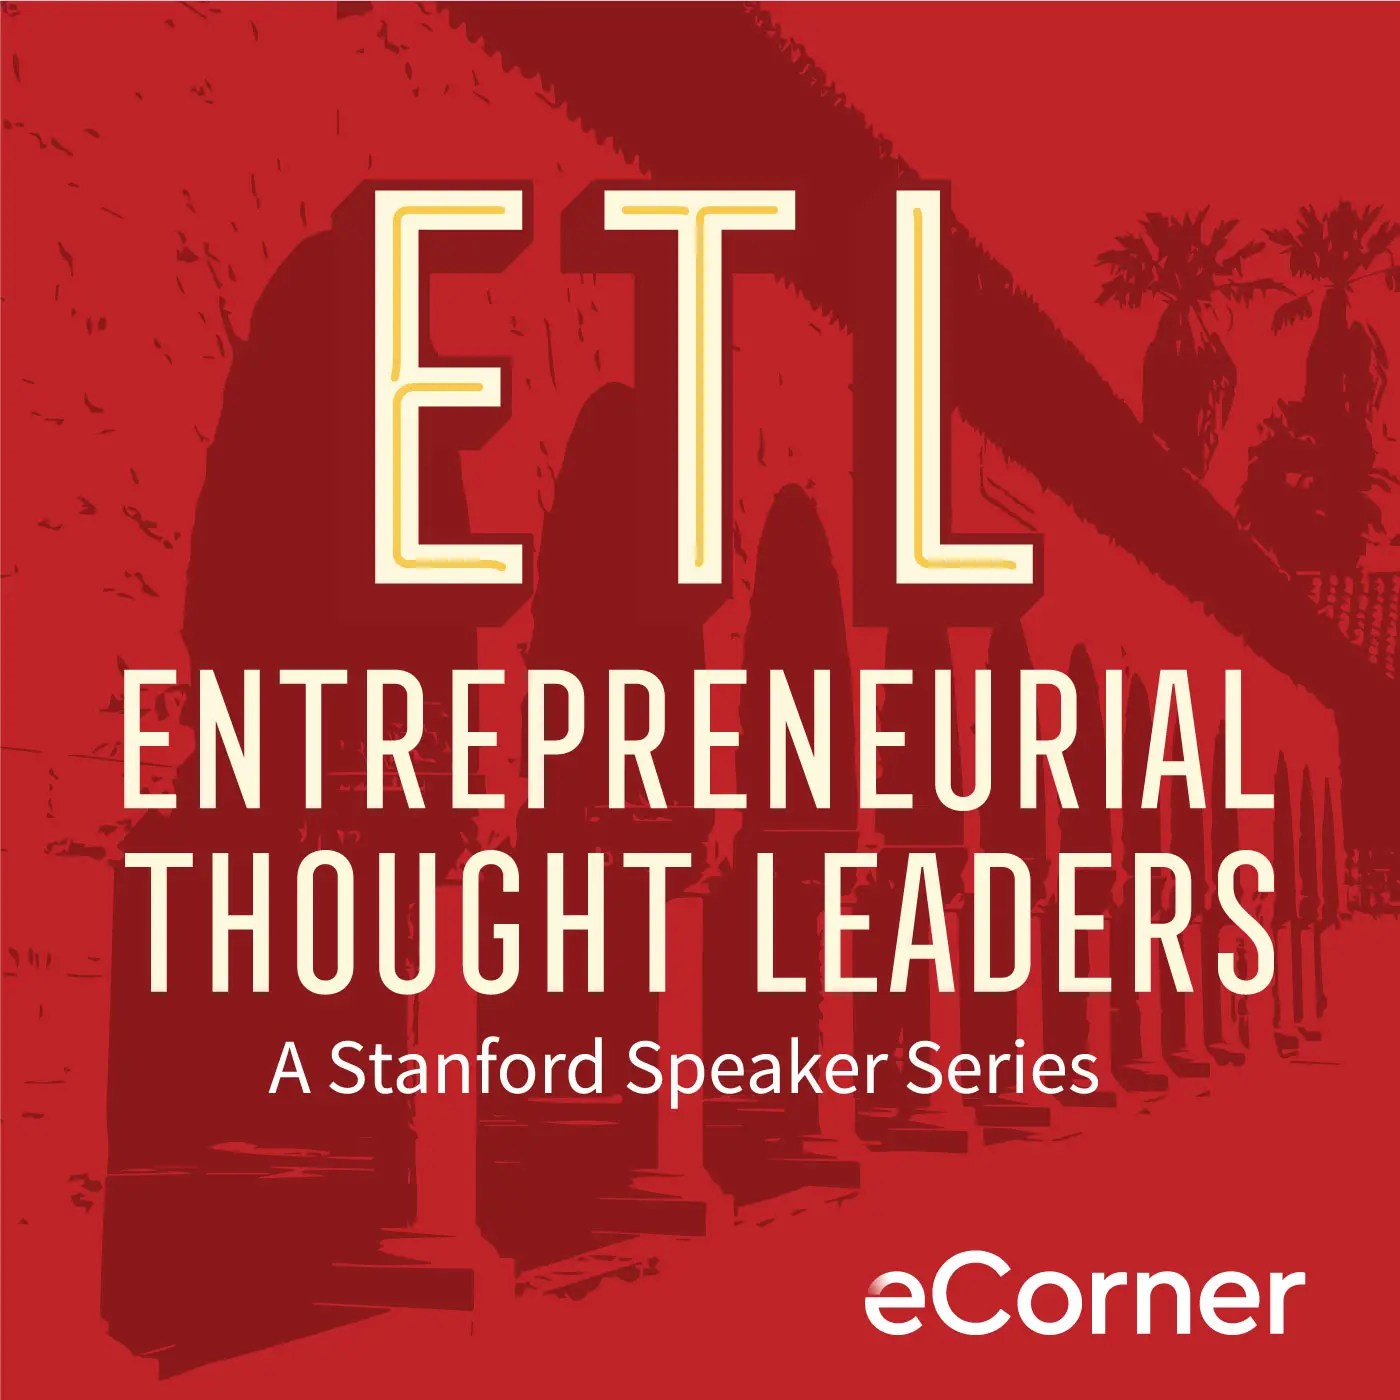 Podcast: Entrepreneurial Thought Leaders